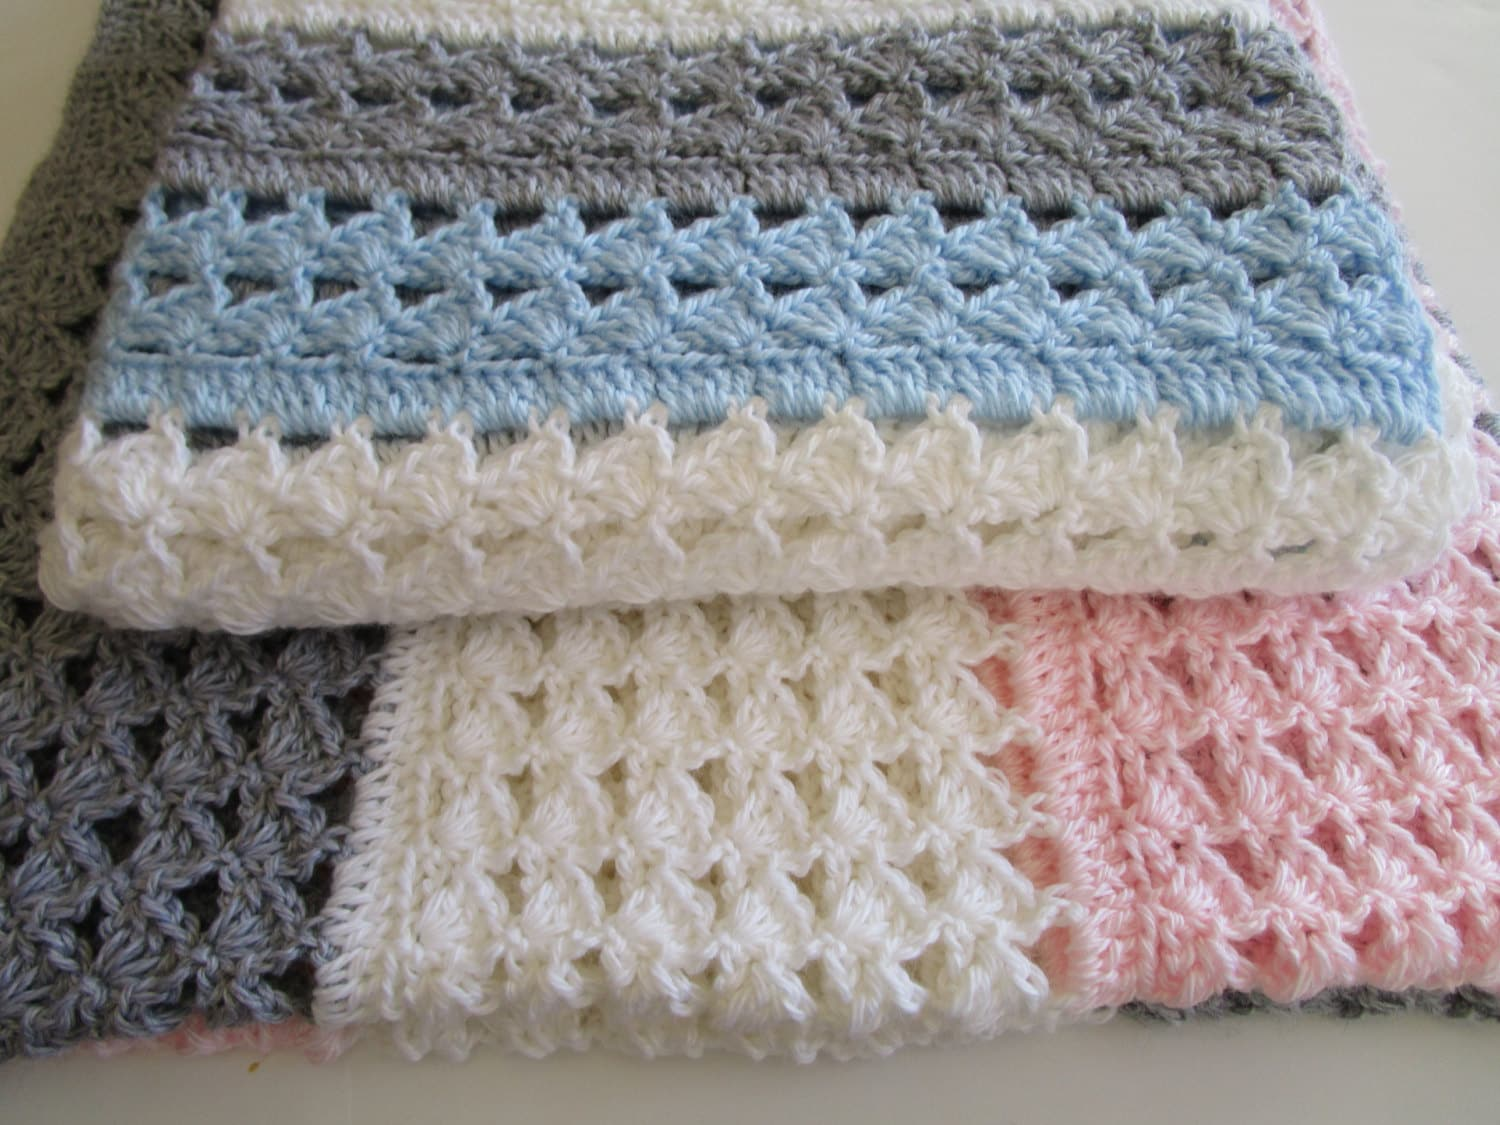 Crochet Patterns, Crochet Baby Blanket Pattern, Crochet Blanket ...